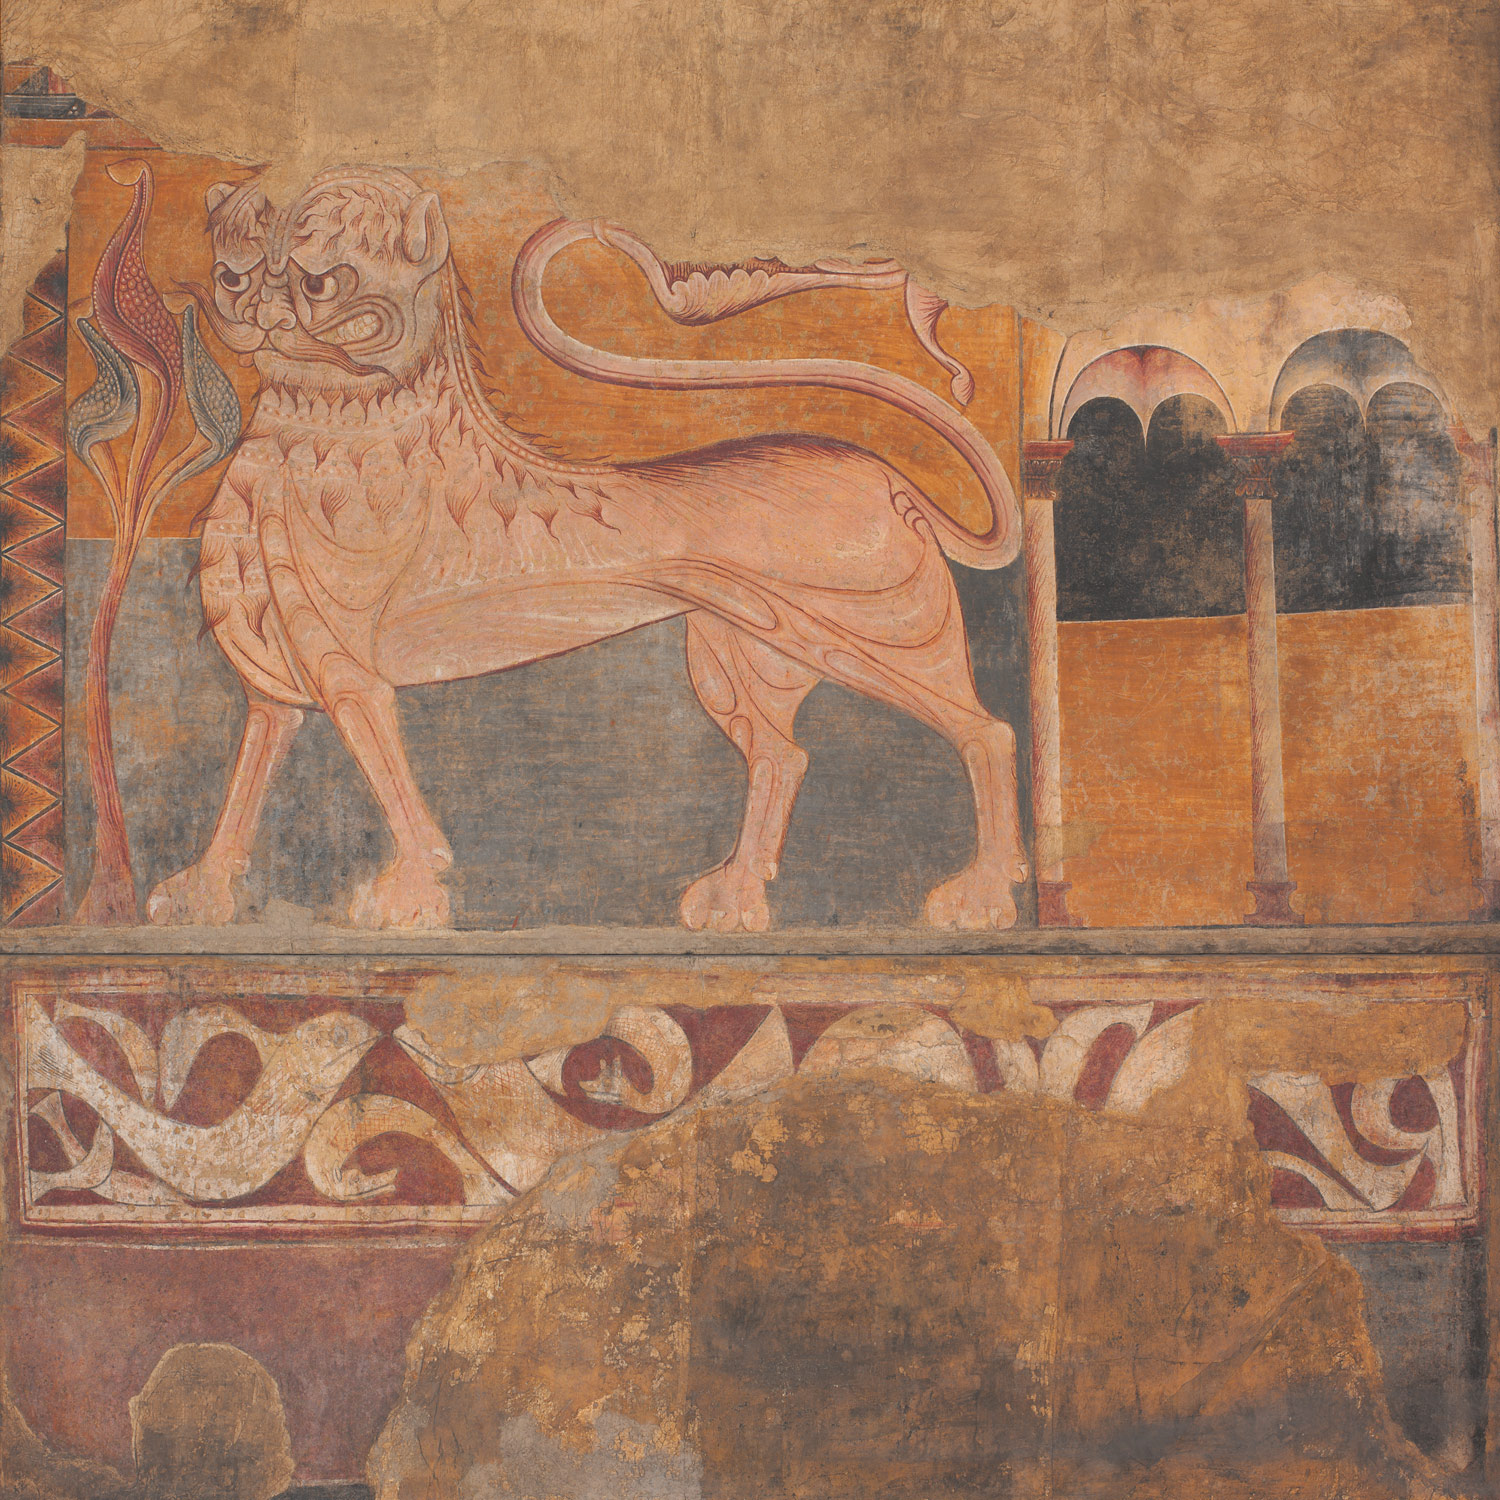 Lion from a Frieze